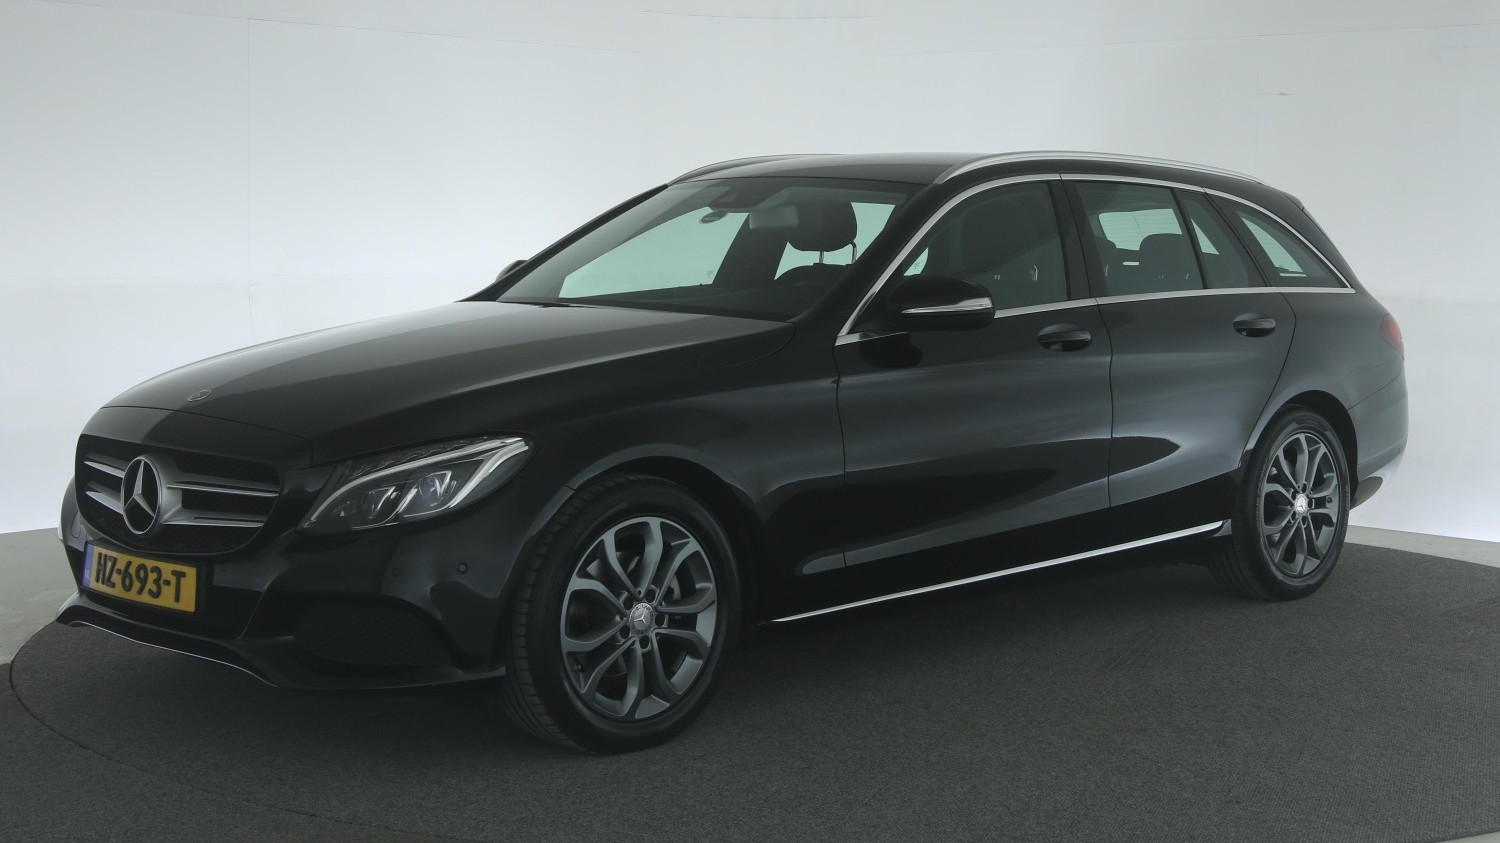 Mercedes-Benz C-klasse Station 2016 HZ-693-T 1